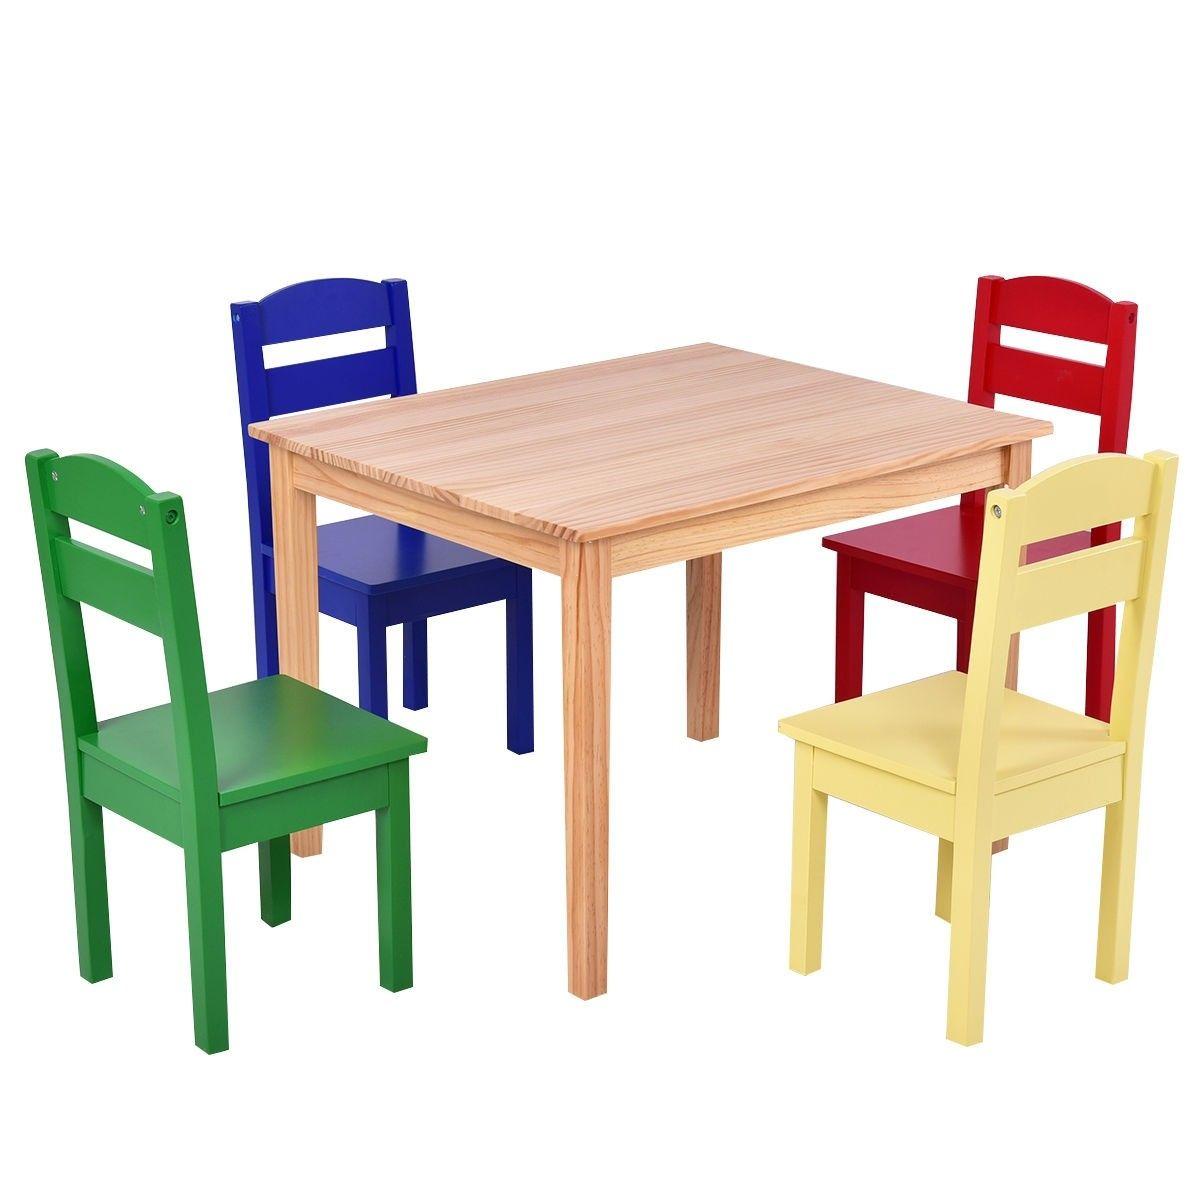 5 Pcs Kids Pine Wood Table Chair Set With Images Kids Wooden